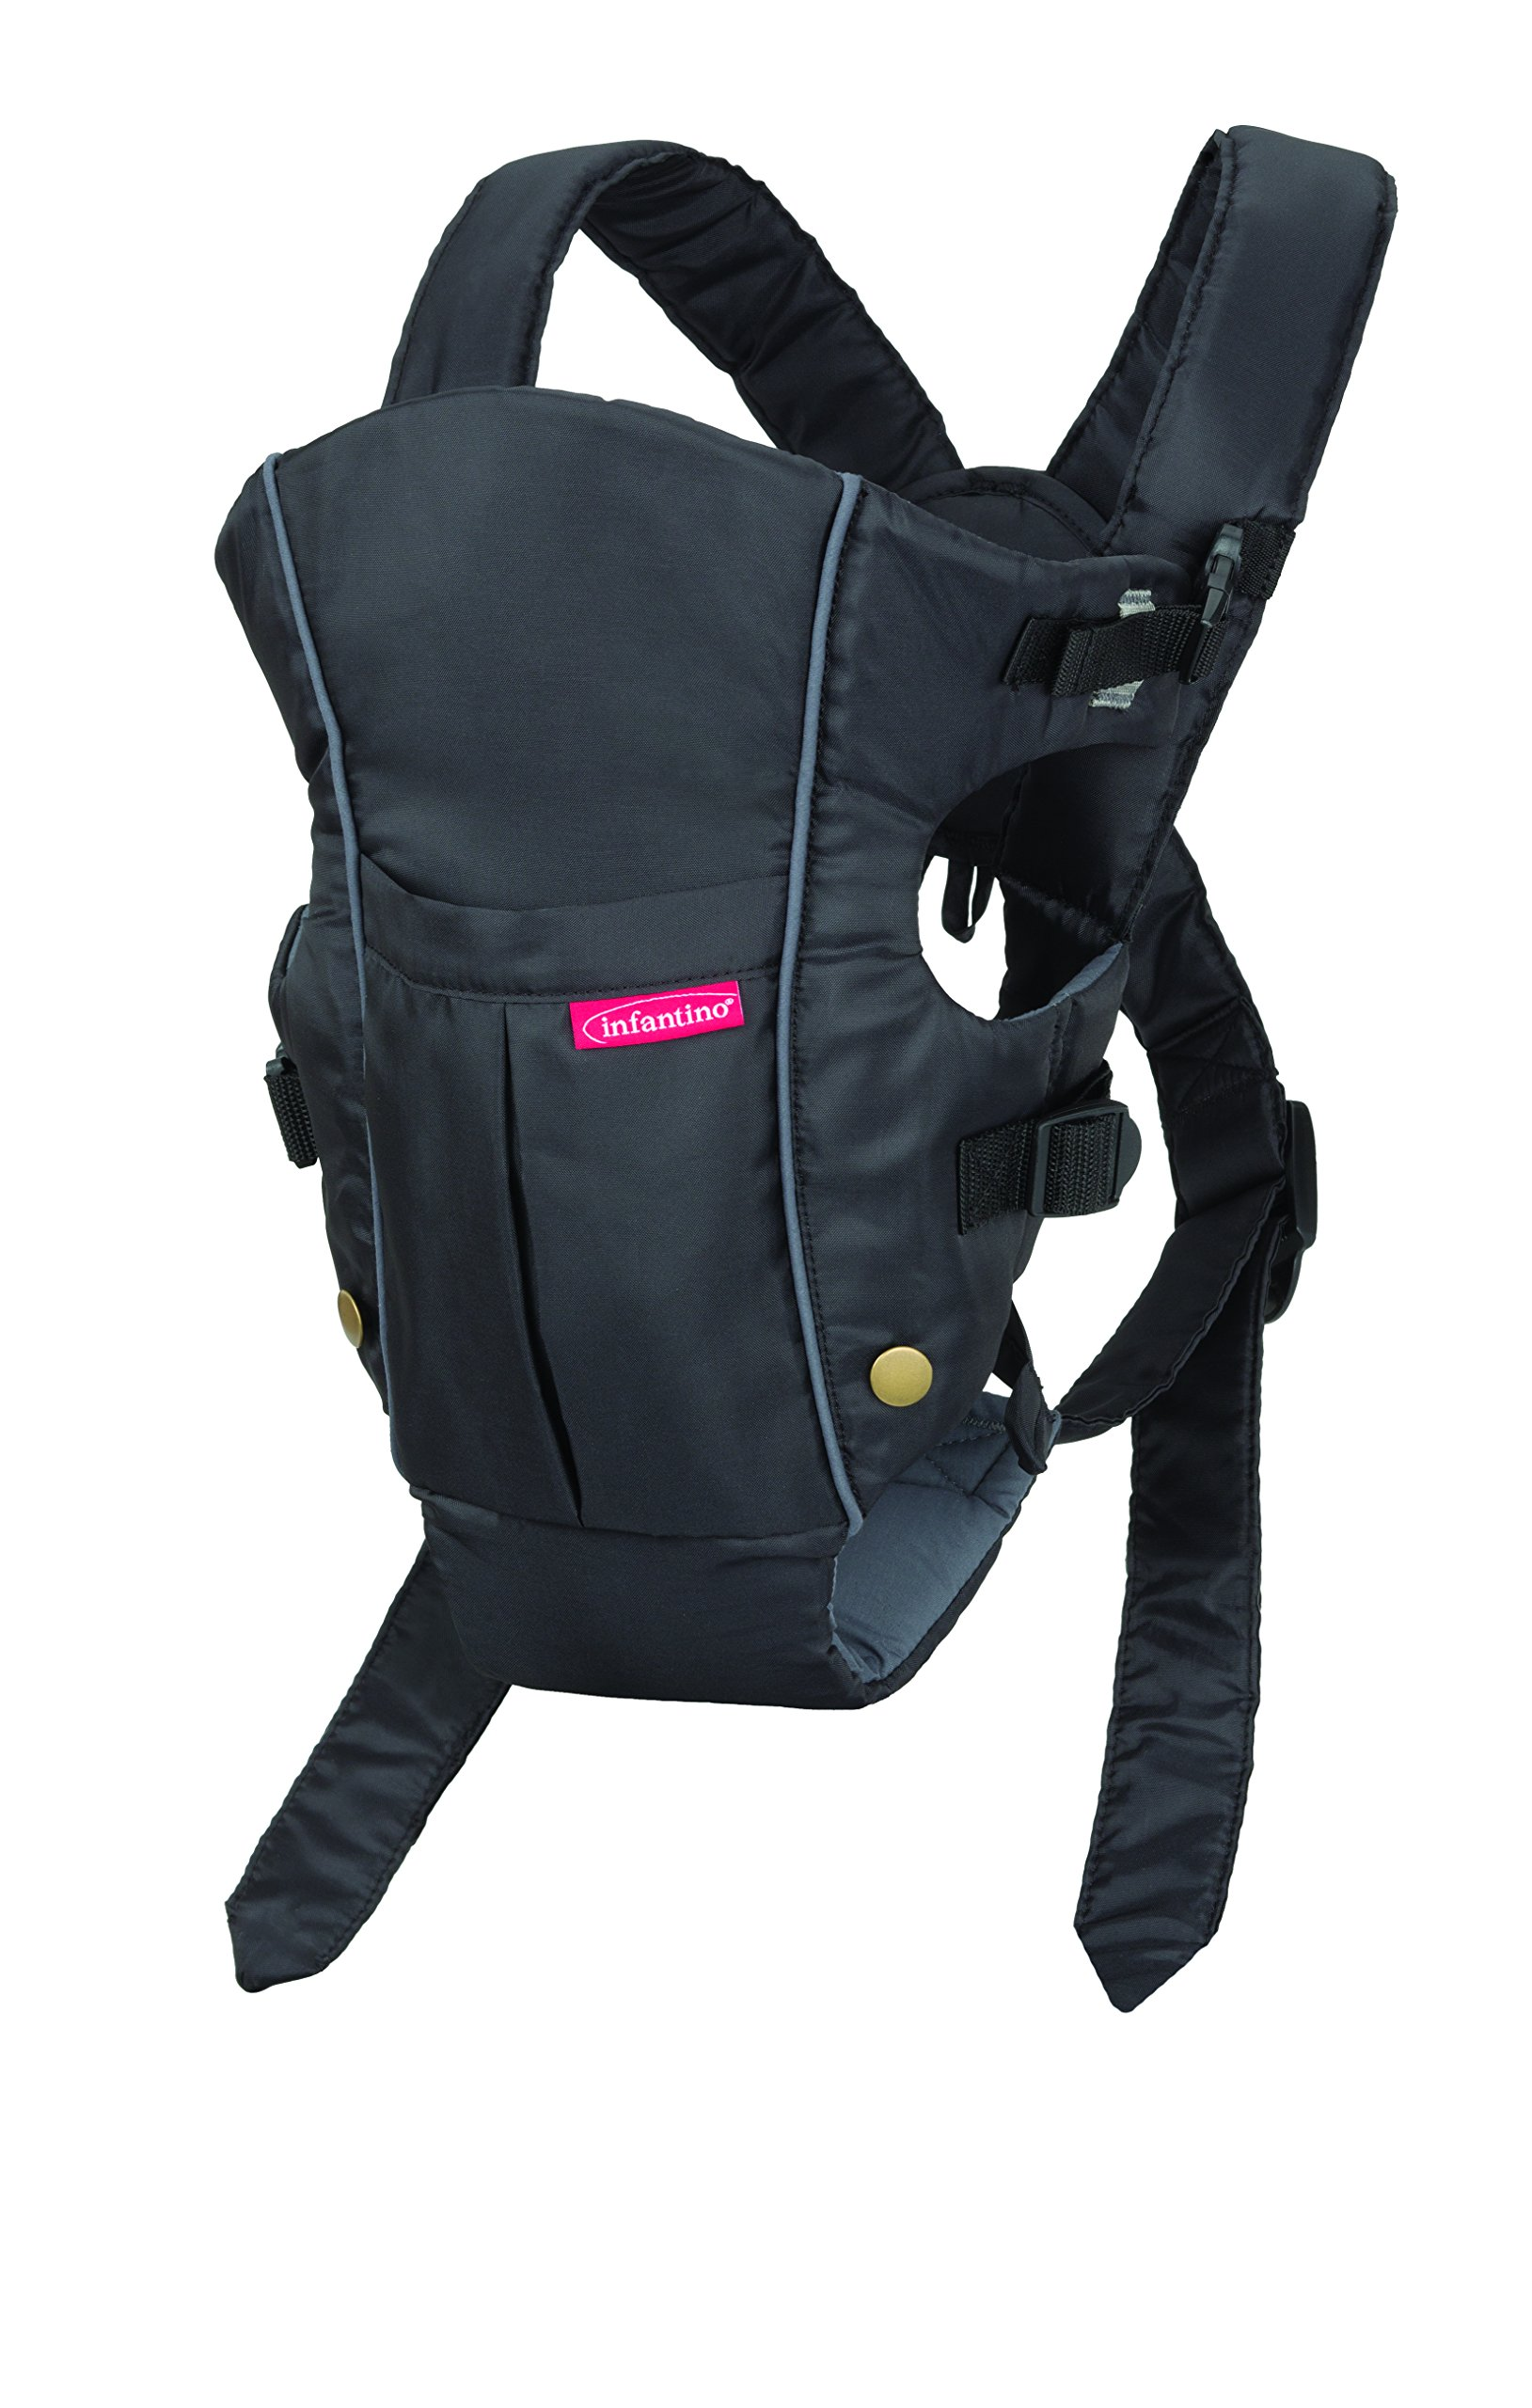 Details about Baby carrier . Infantino Swift Classic Soft Carrier .Black